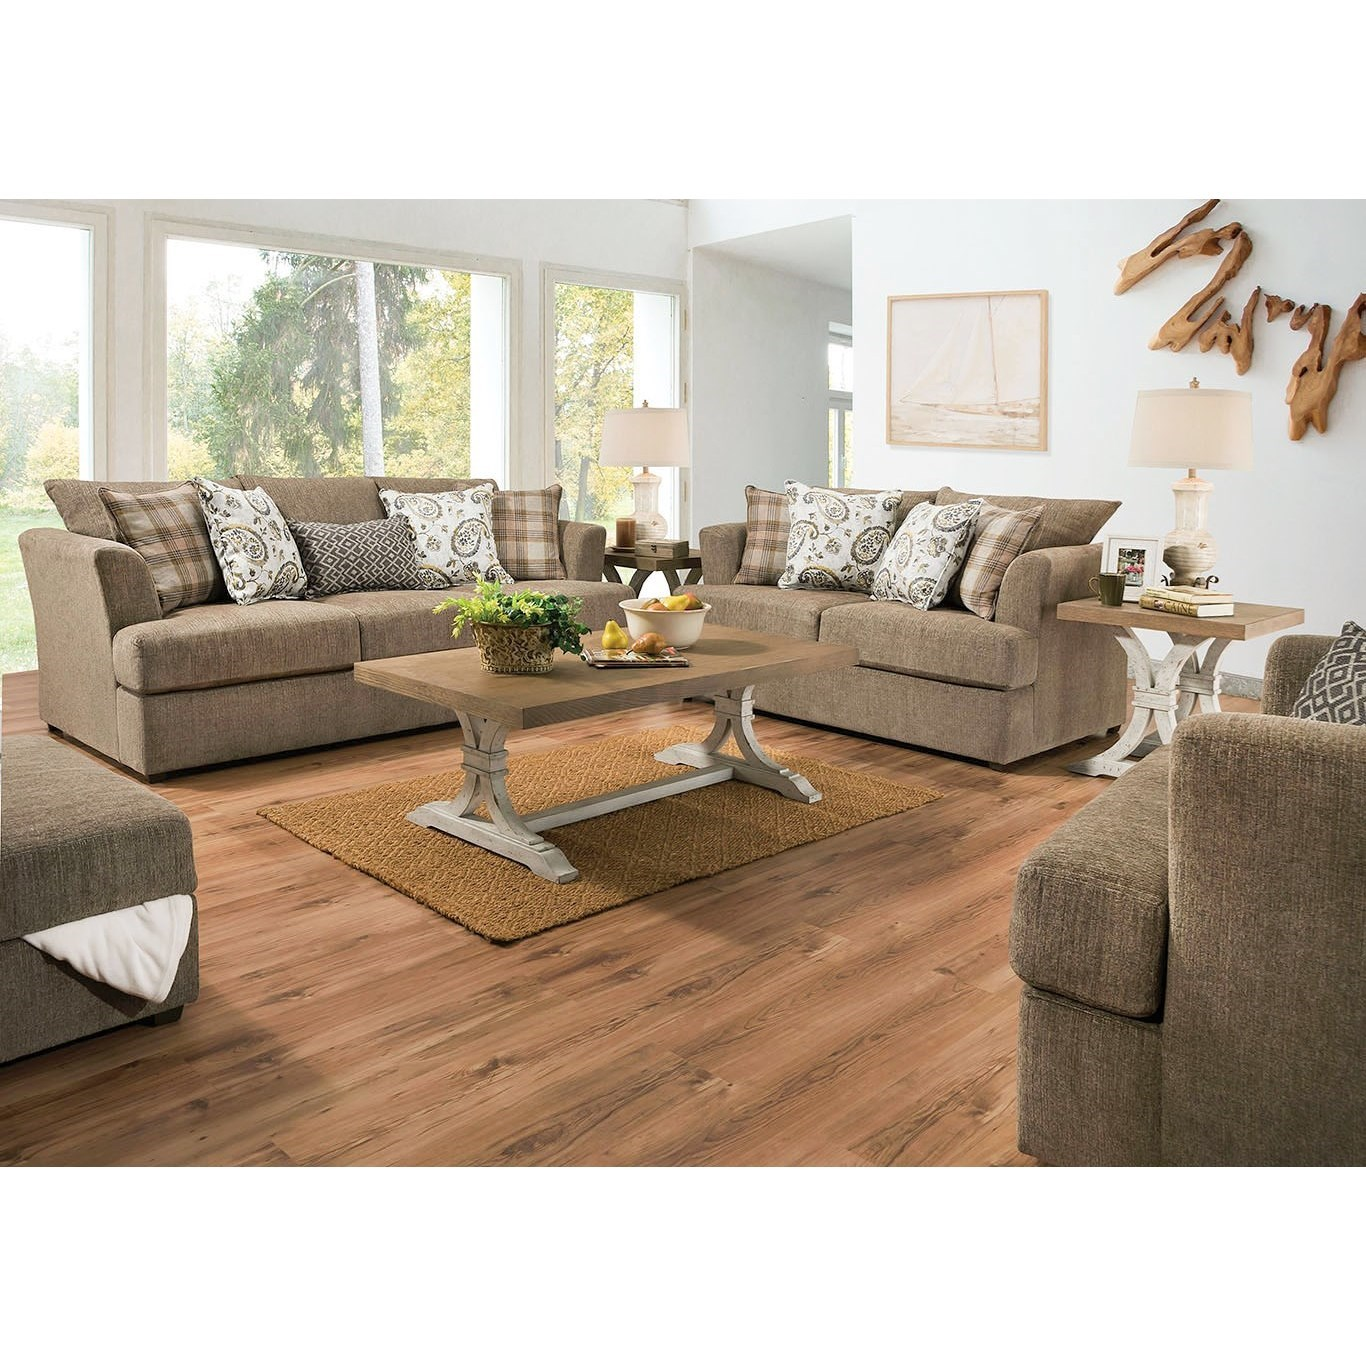 8009 Living Room Group by Lane at Esprit Decor Home Furnishings